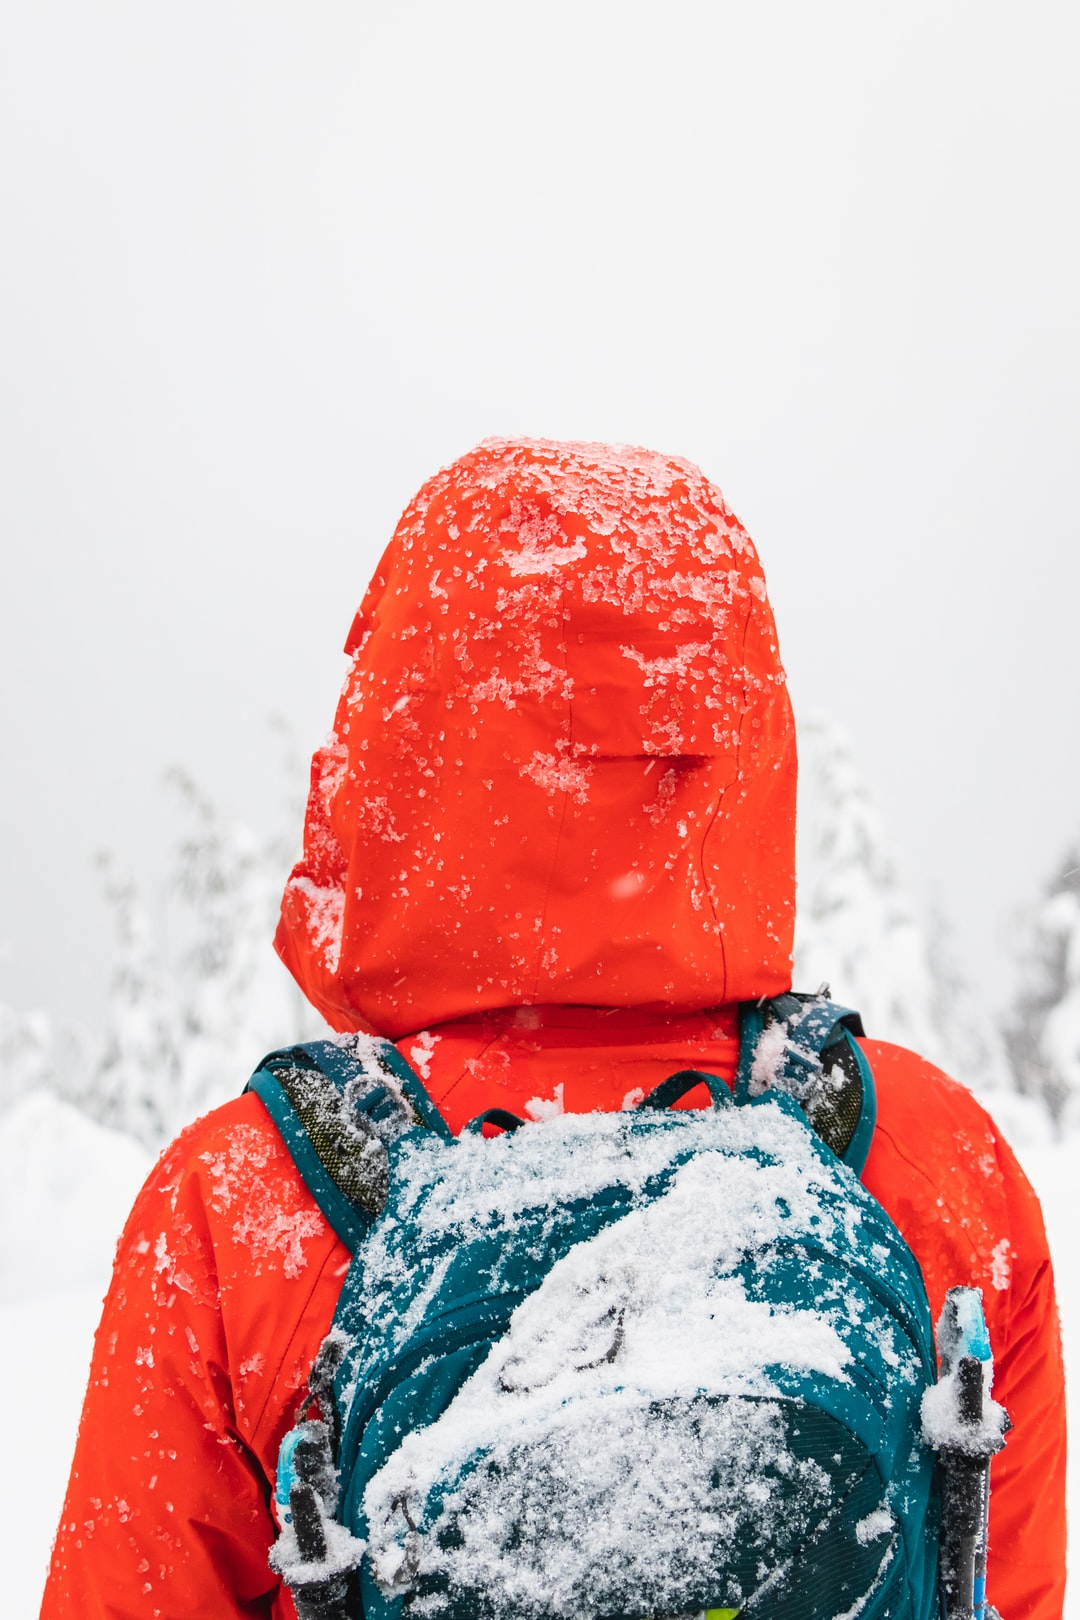 person wearing red winter jacket and backpack covered in snow